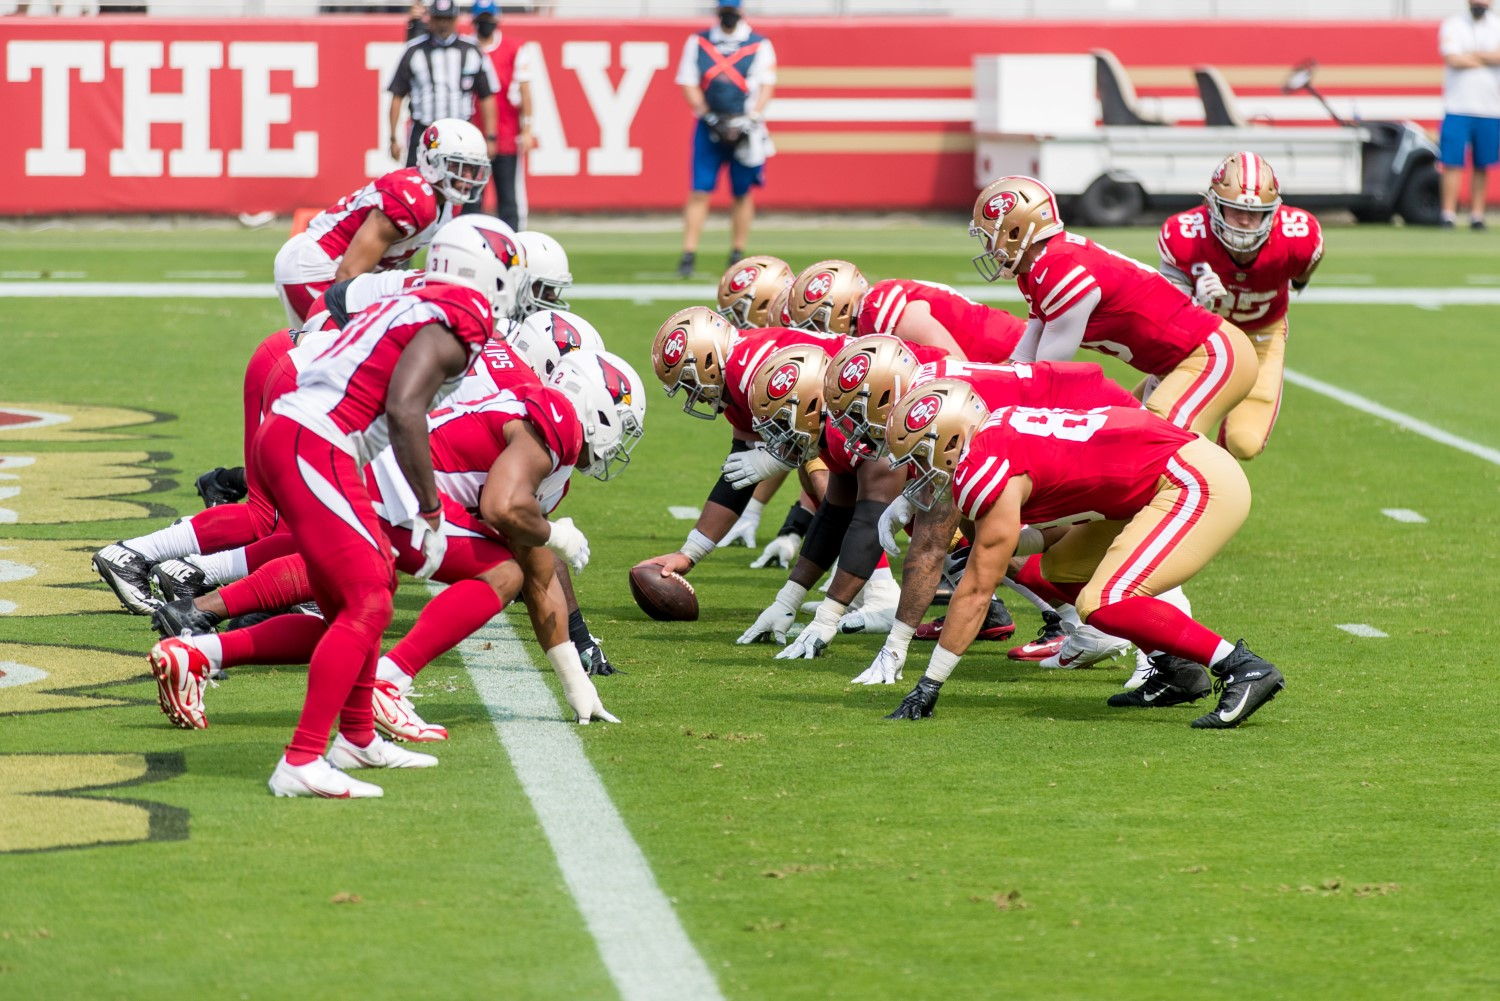 The San Franciso 49ers and Arizona Cardinals game is going to be part of a week-long partnership between the NFL and Amazon.